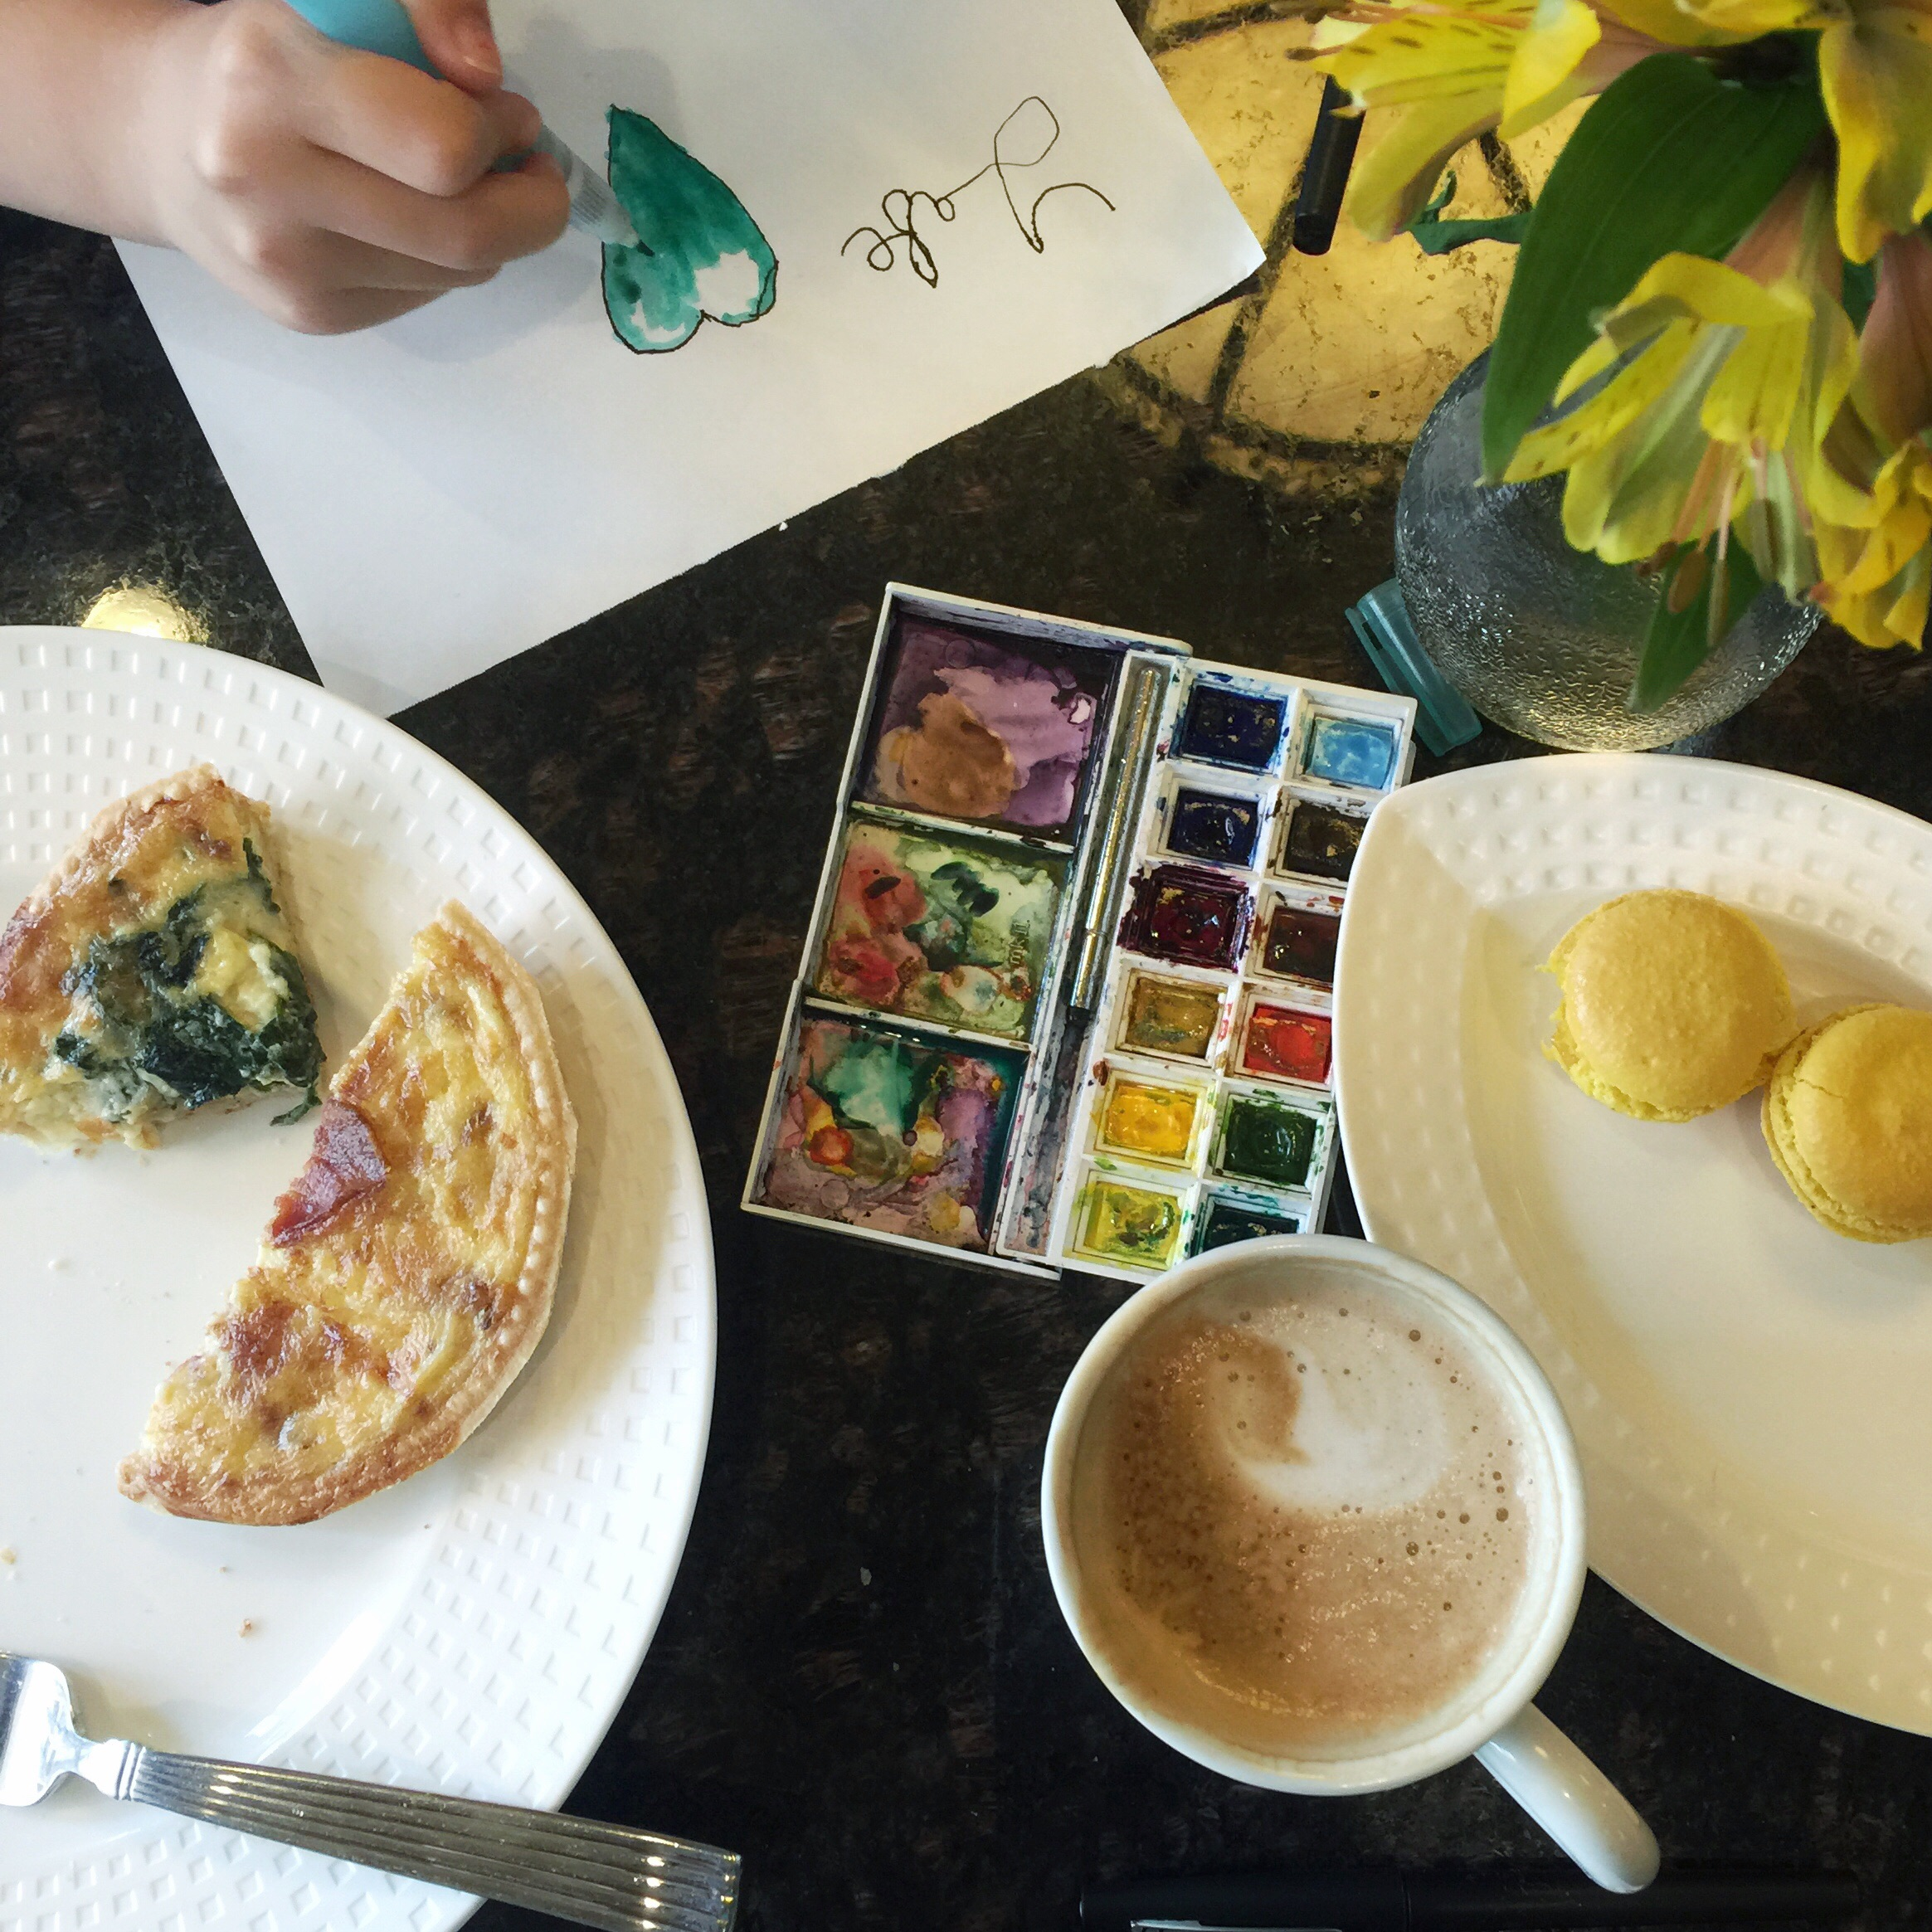 Coffee, breakfast, and art with a granddaughter....perfection.